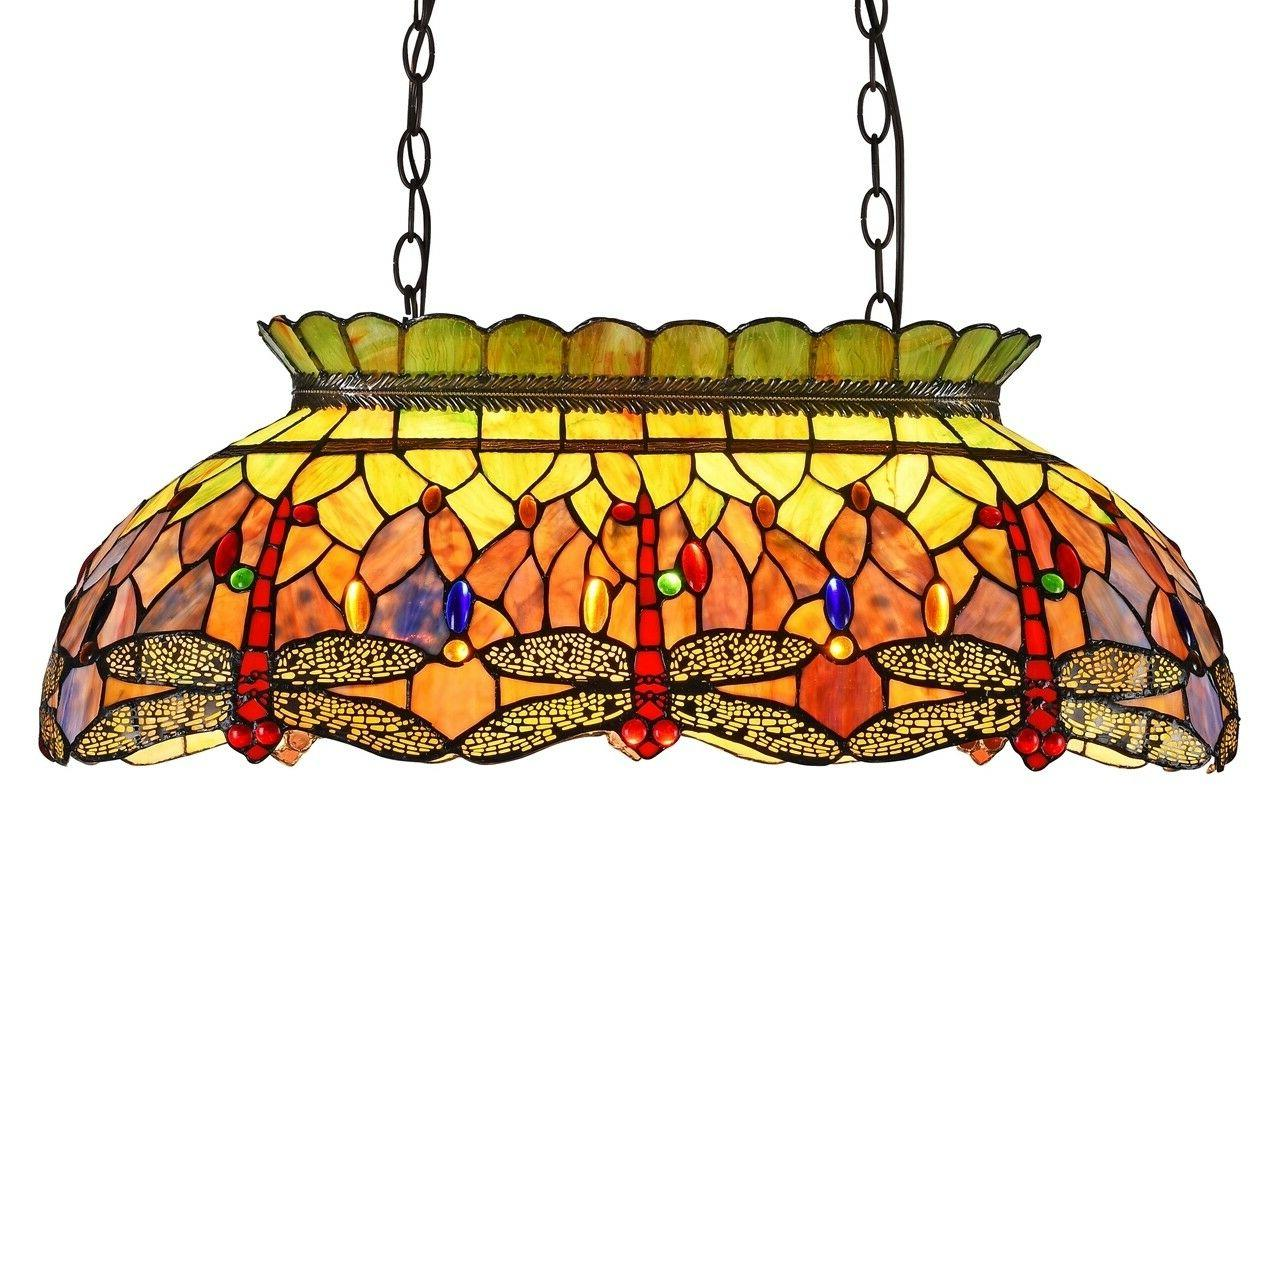 HandCrafted Tiffany Style Glass Pendant